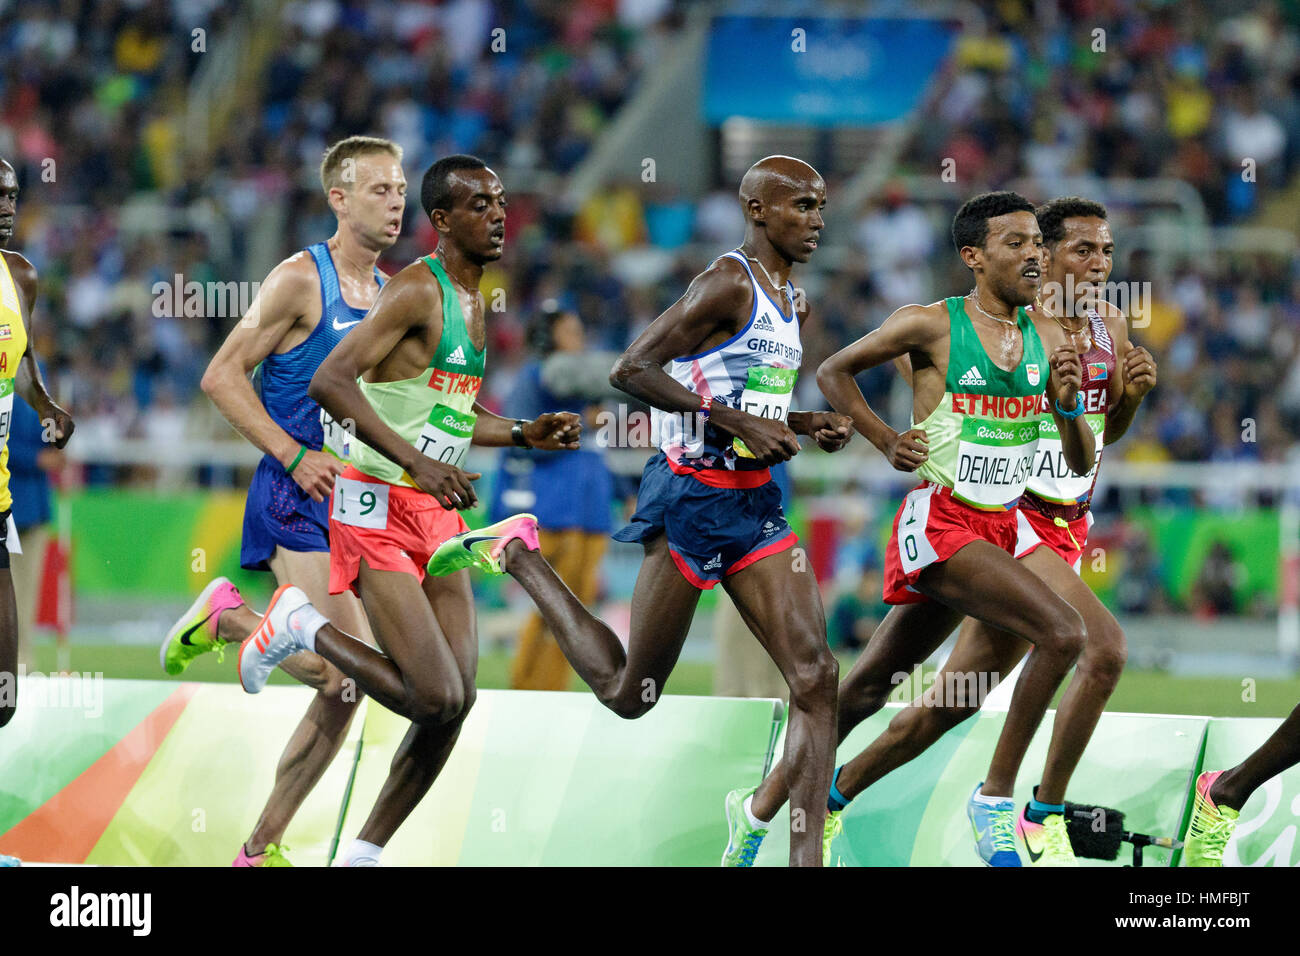 Rio de Janeiro, Brazil. 13 August 2016.  Athletics, Men's 10.000m final at the 2016 Olympic Summer Games. ©Paul - Stock Image